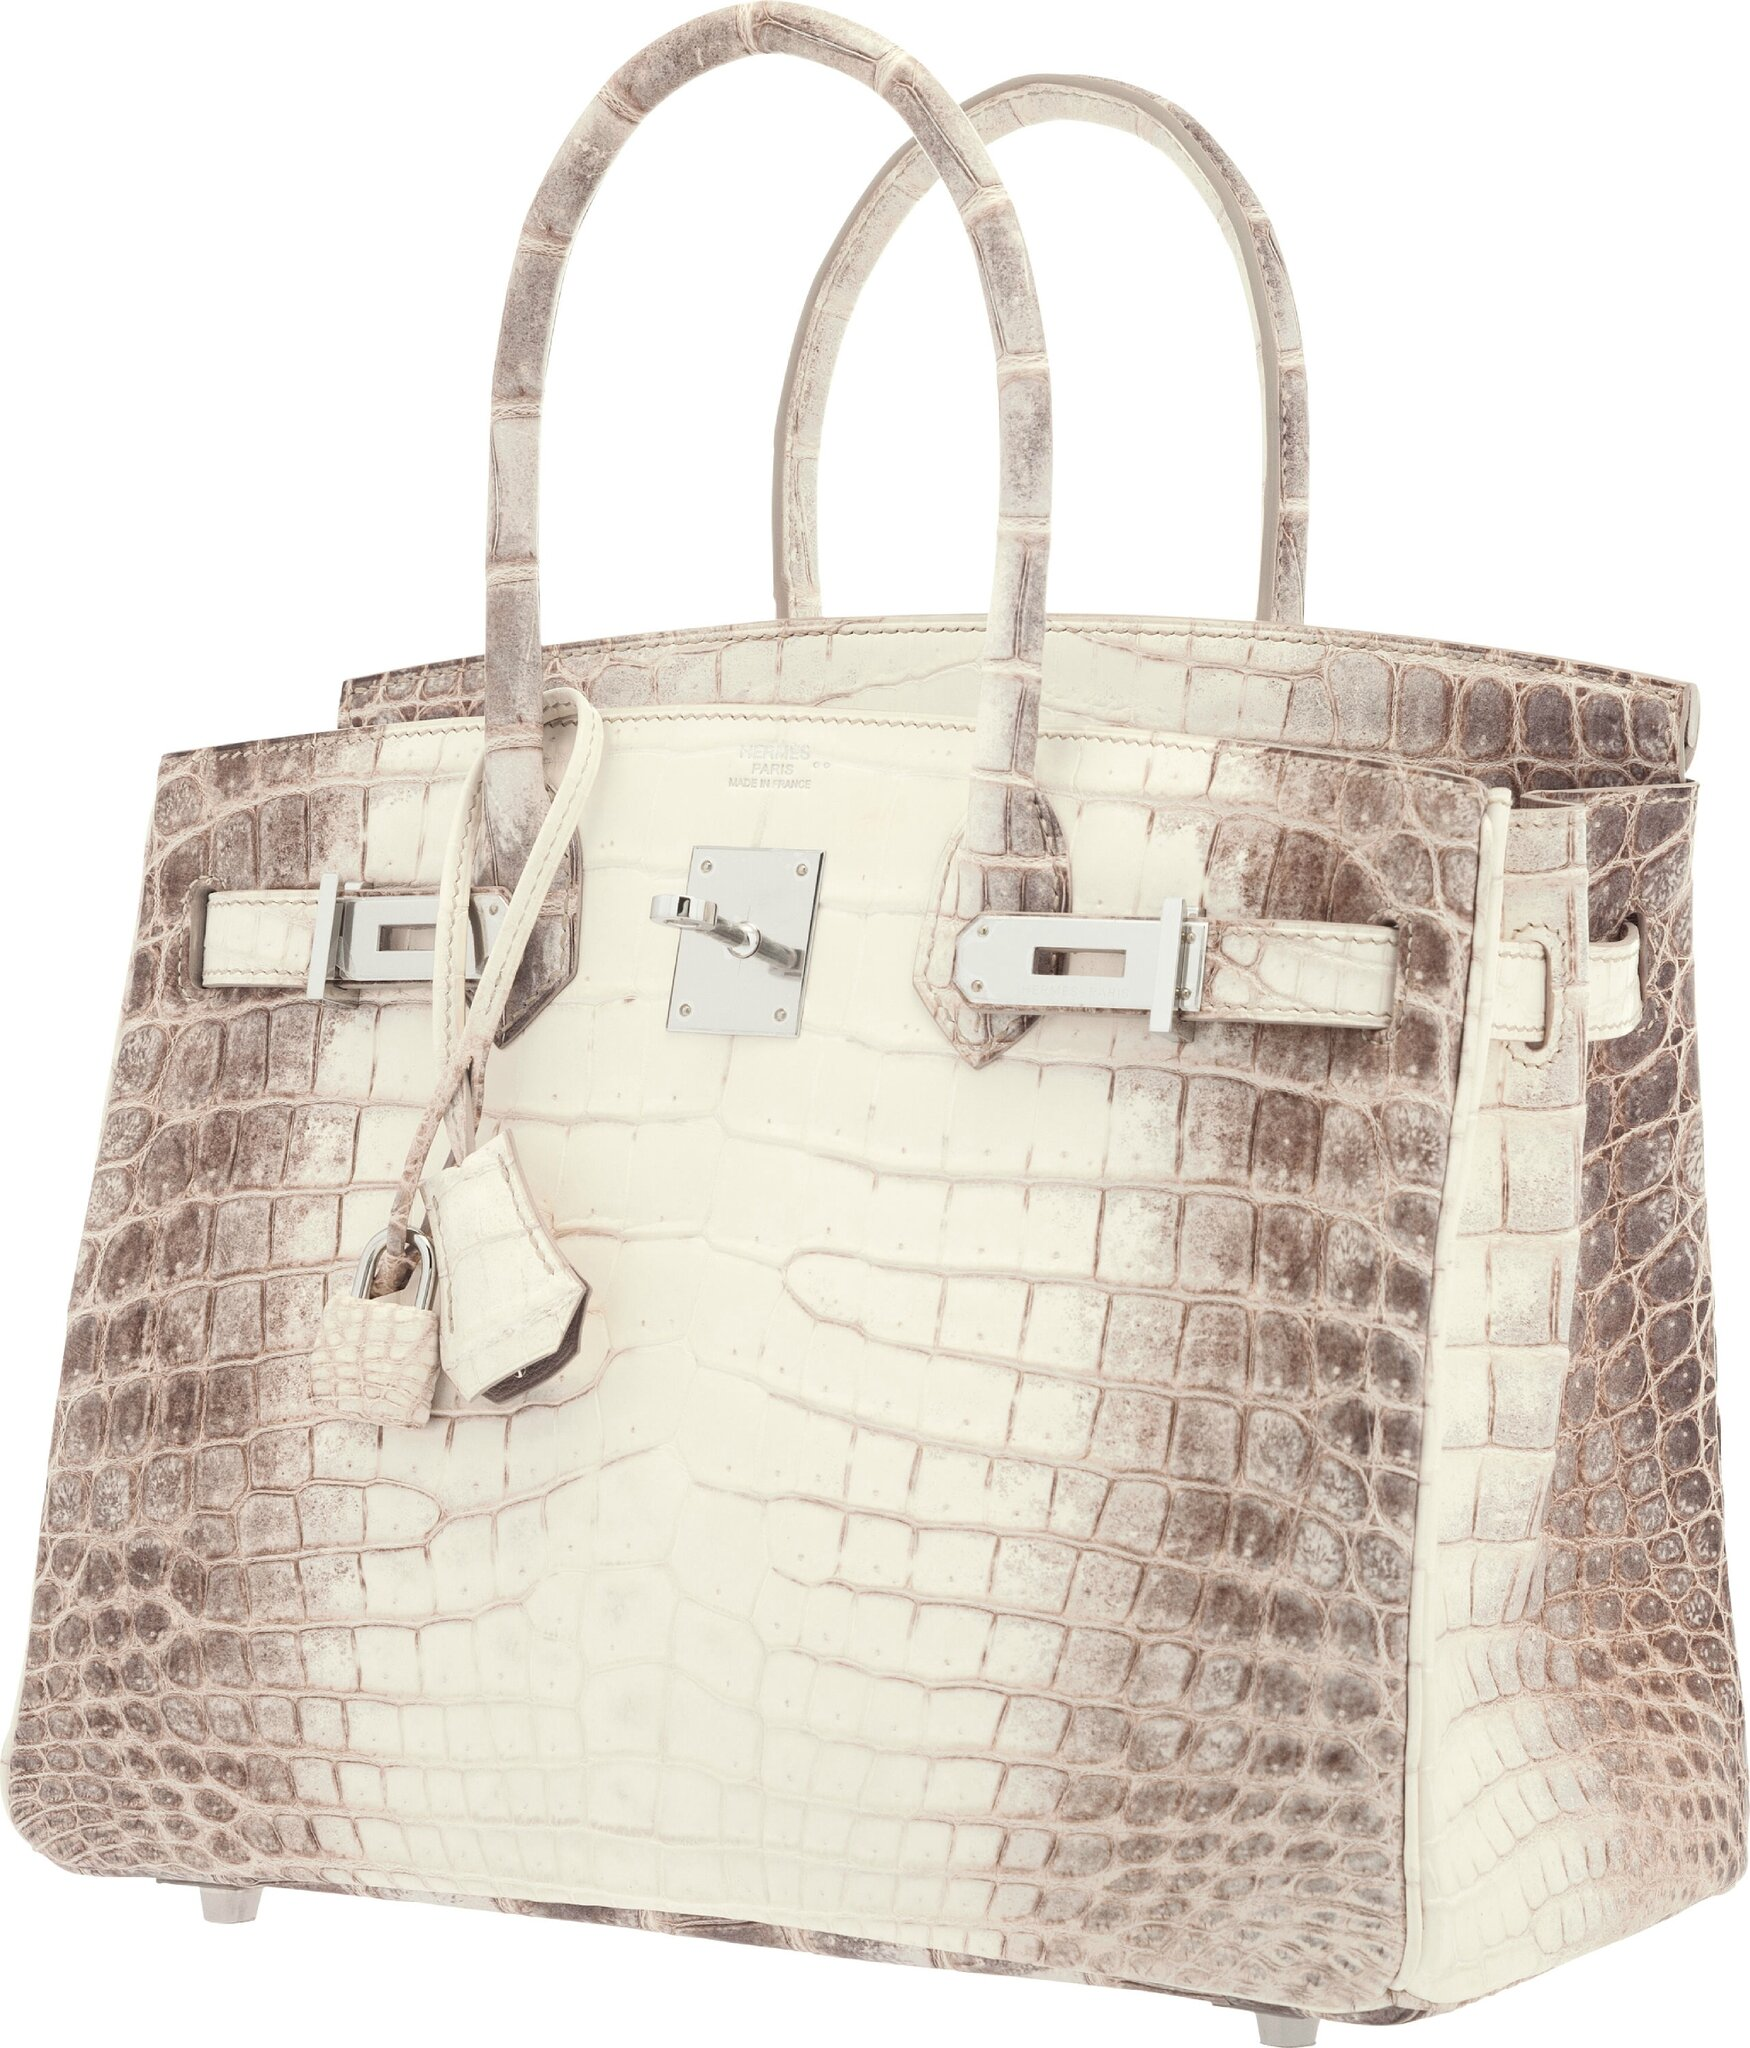 b64460e424 Hermès rarities   Holiday Luxury at Heritage Auctions  accessories  signature auction